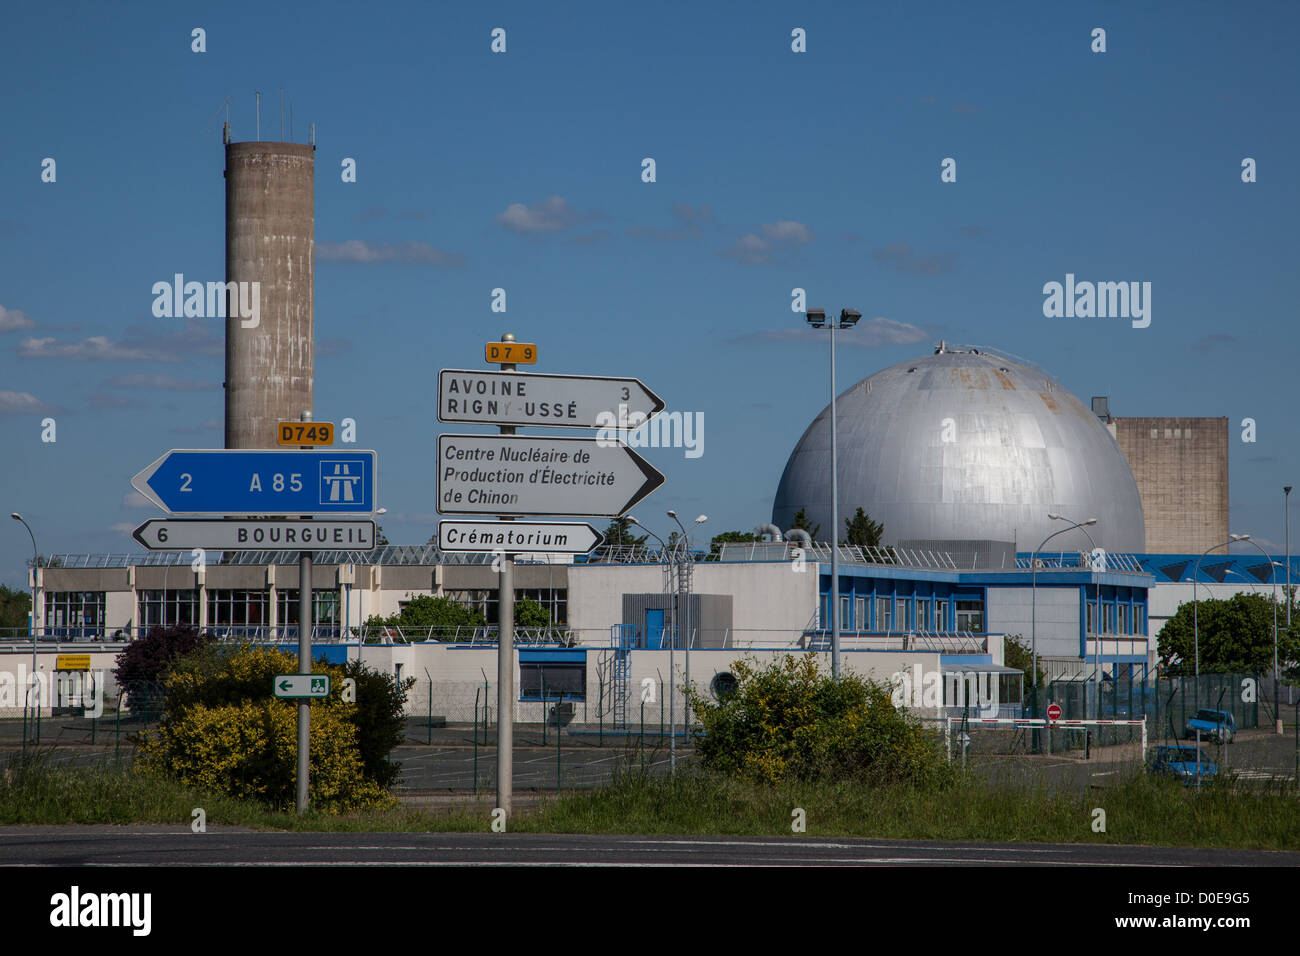 NUCLEAR POWER PLANT IN CHINON INDRE-ET-LOIRE (37) FRANCE - Stock Image